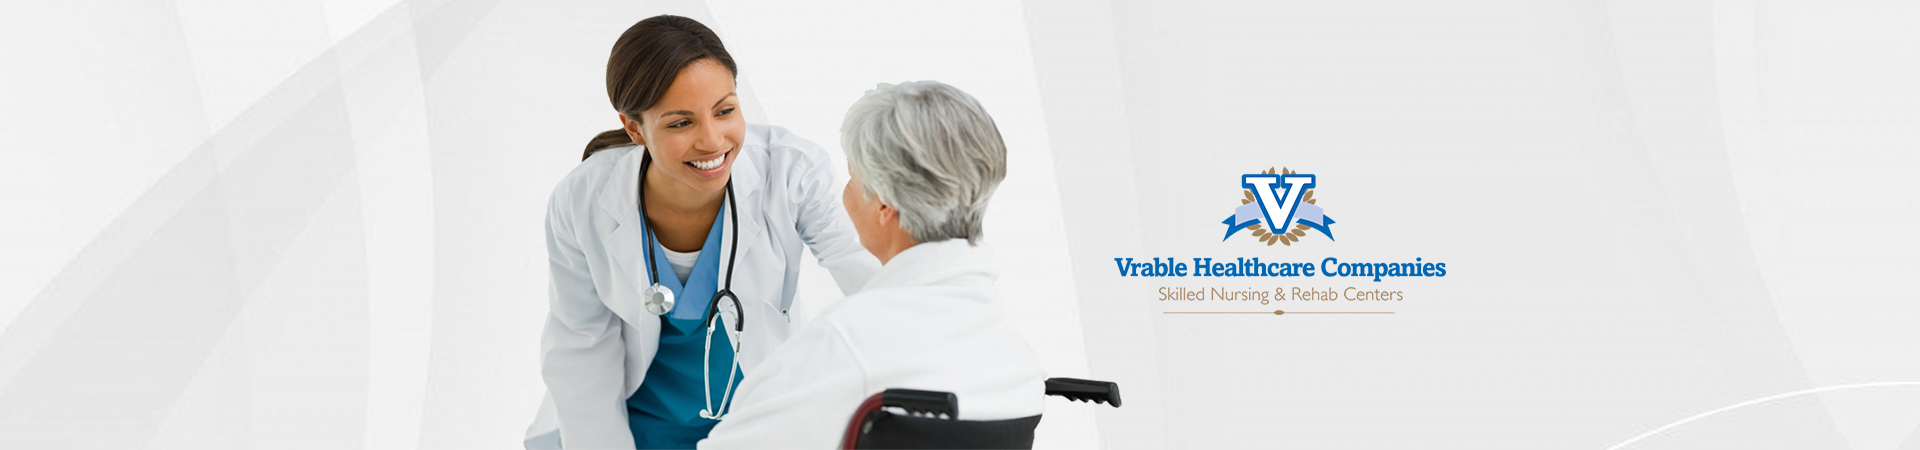 Vrable Healthcare